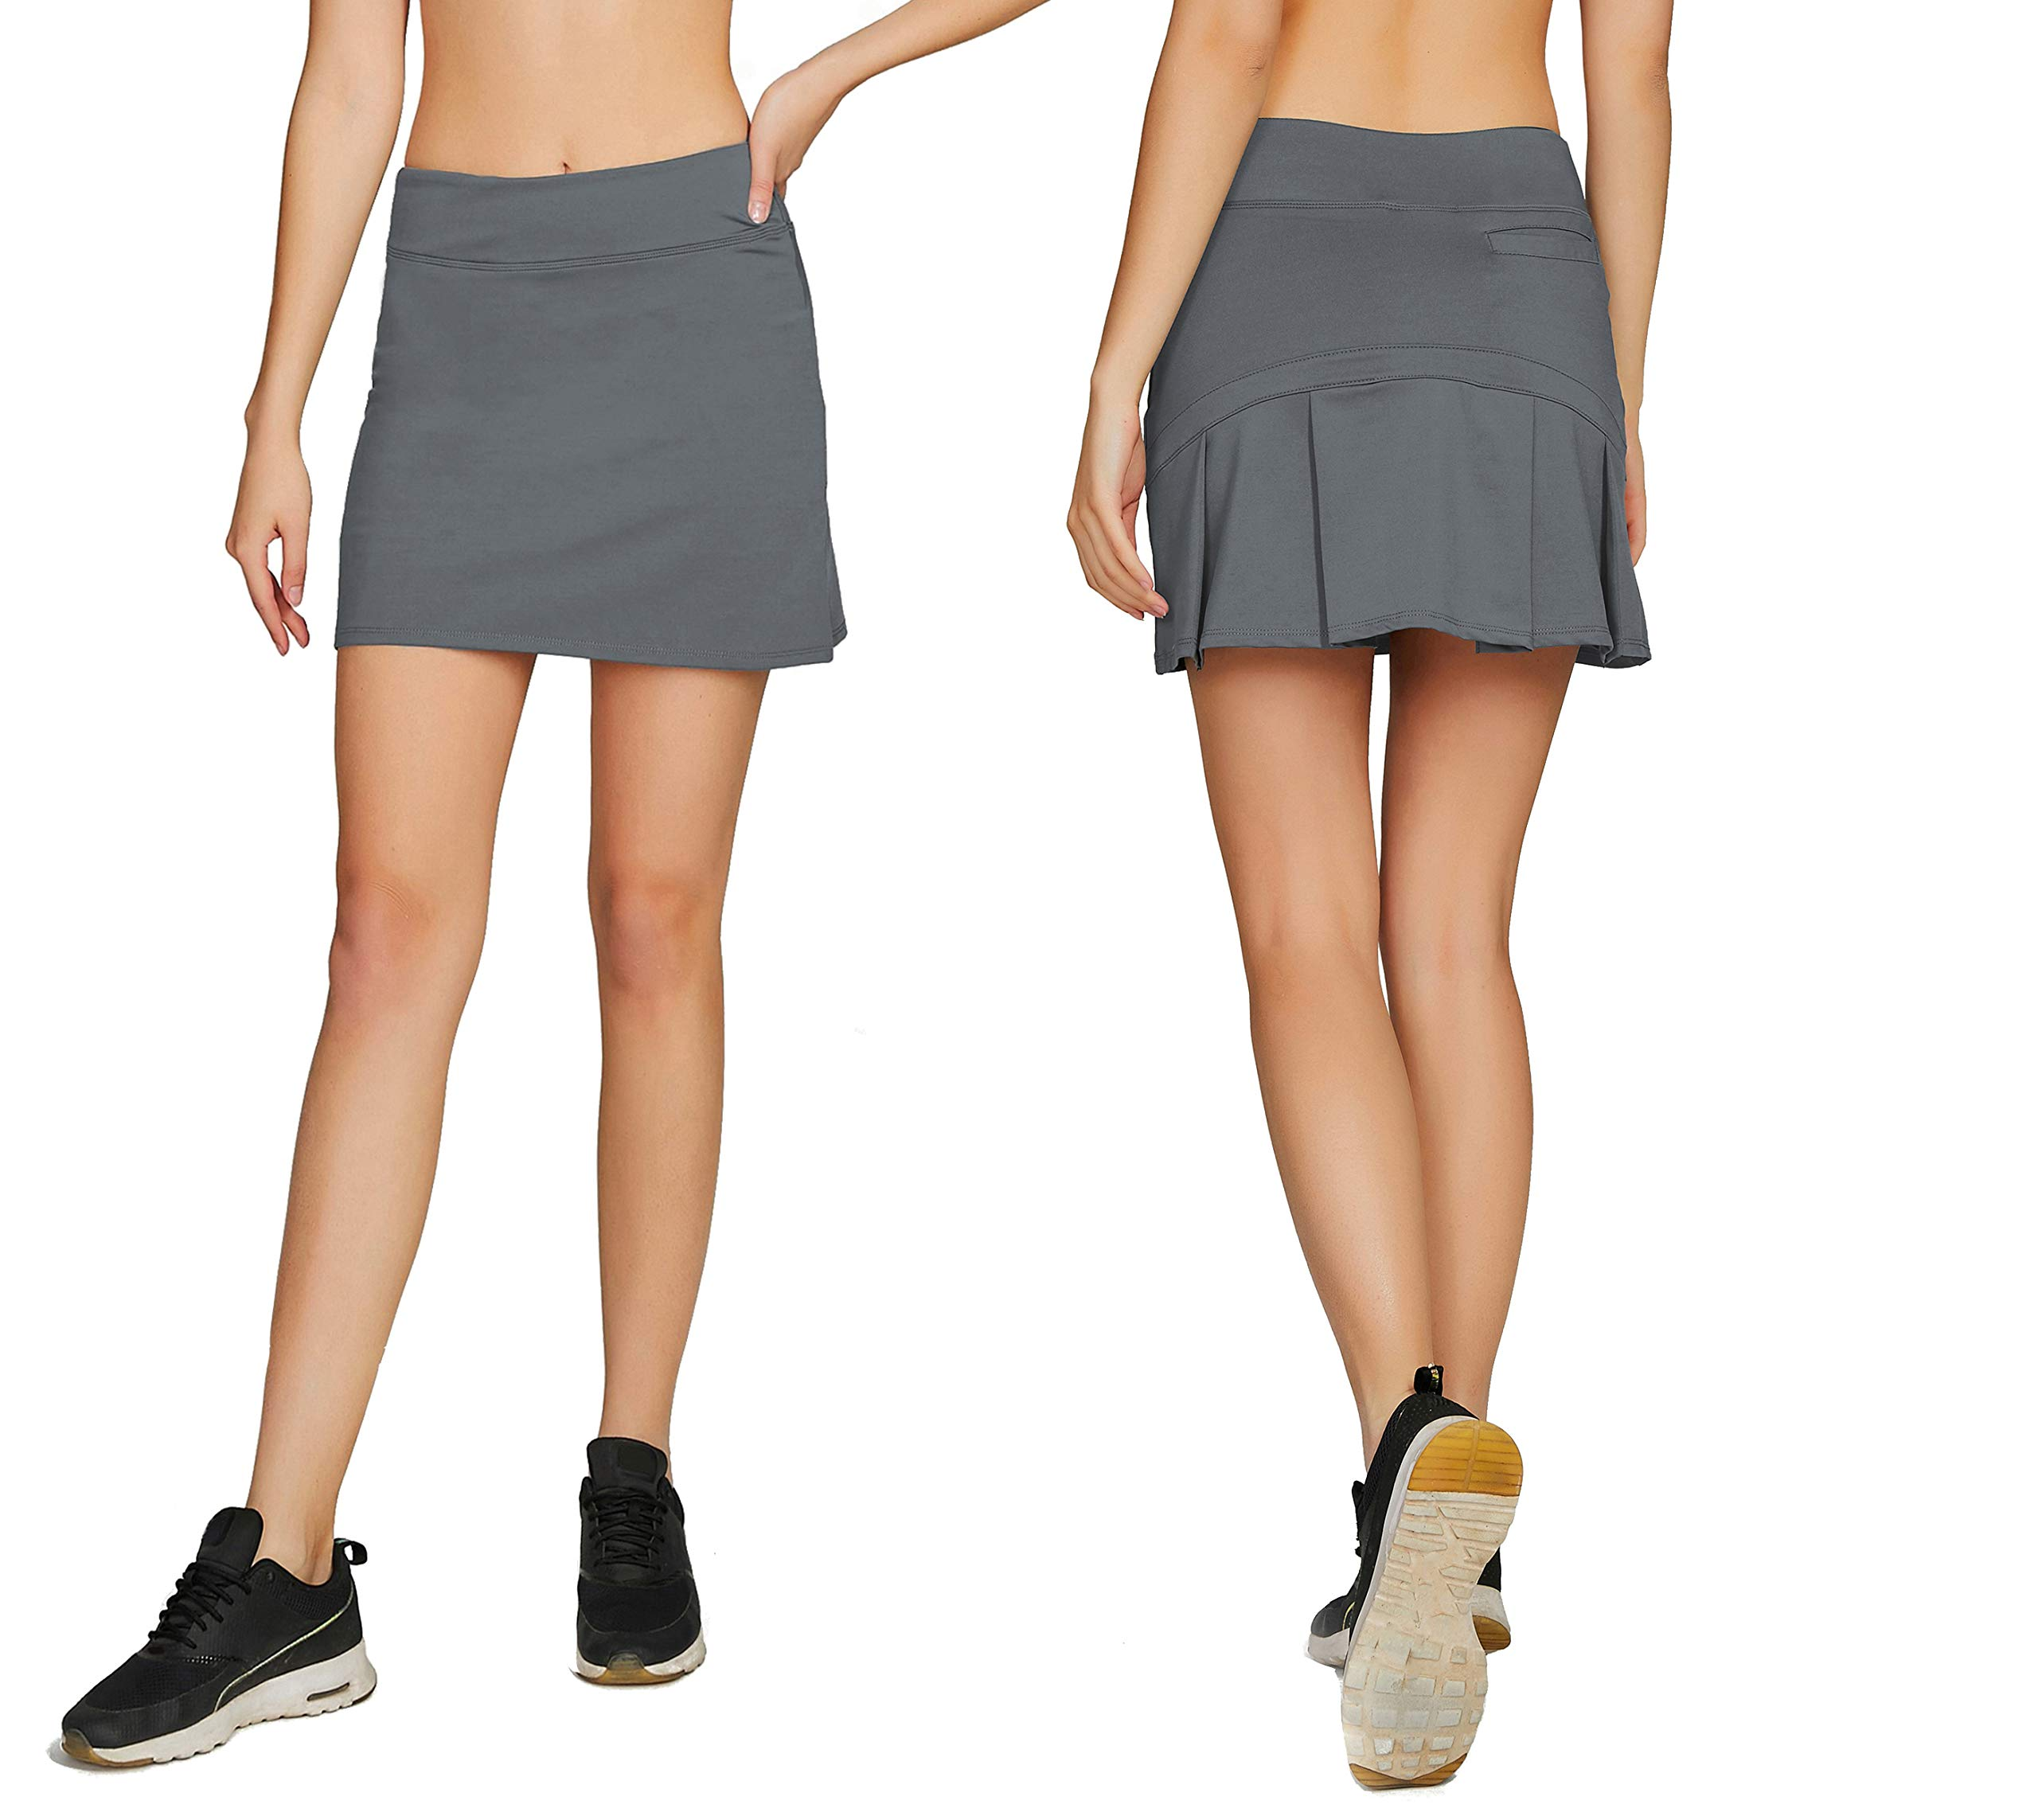 Cityoung Women's Casual Pleated Golf Skirt with Underneath Shorts Running Skorts l grey1